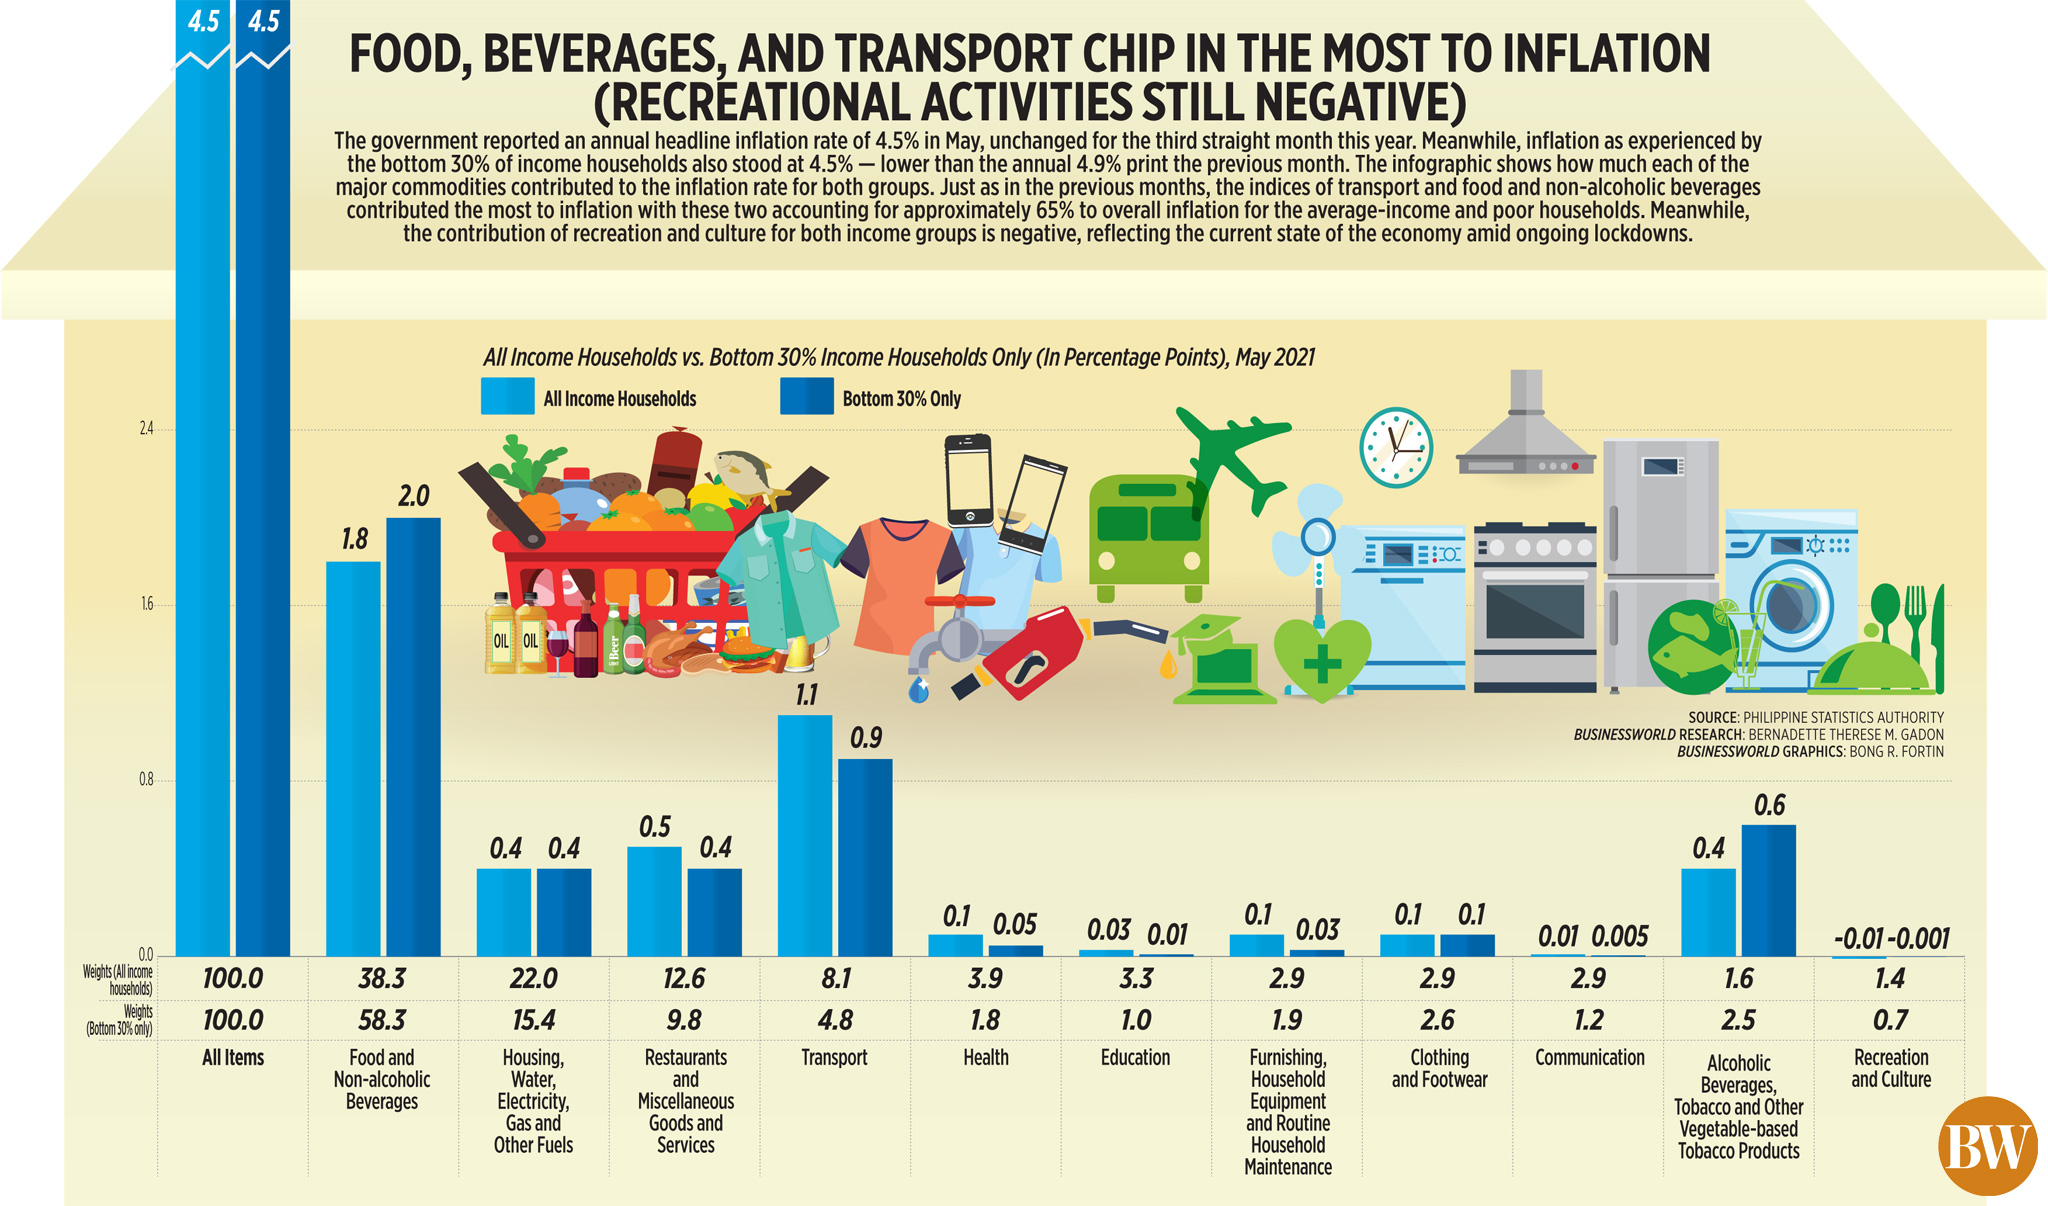 Food, Beverages, and Transport Chip in the most to Inflation (Recreational Activities Still Negative)